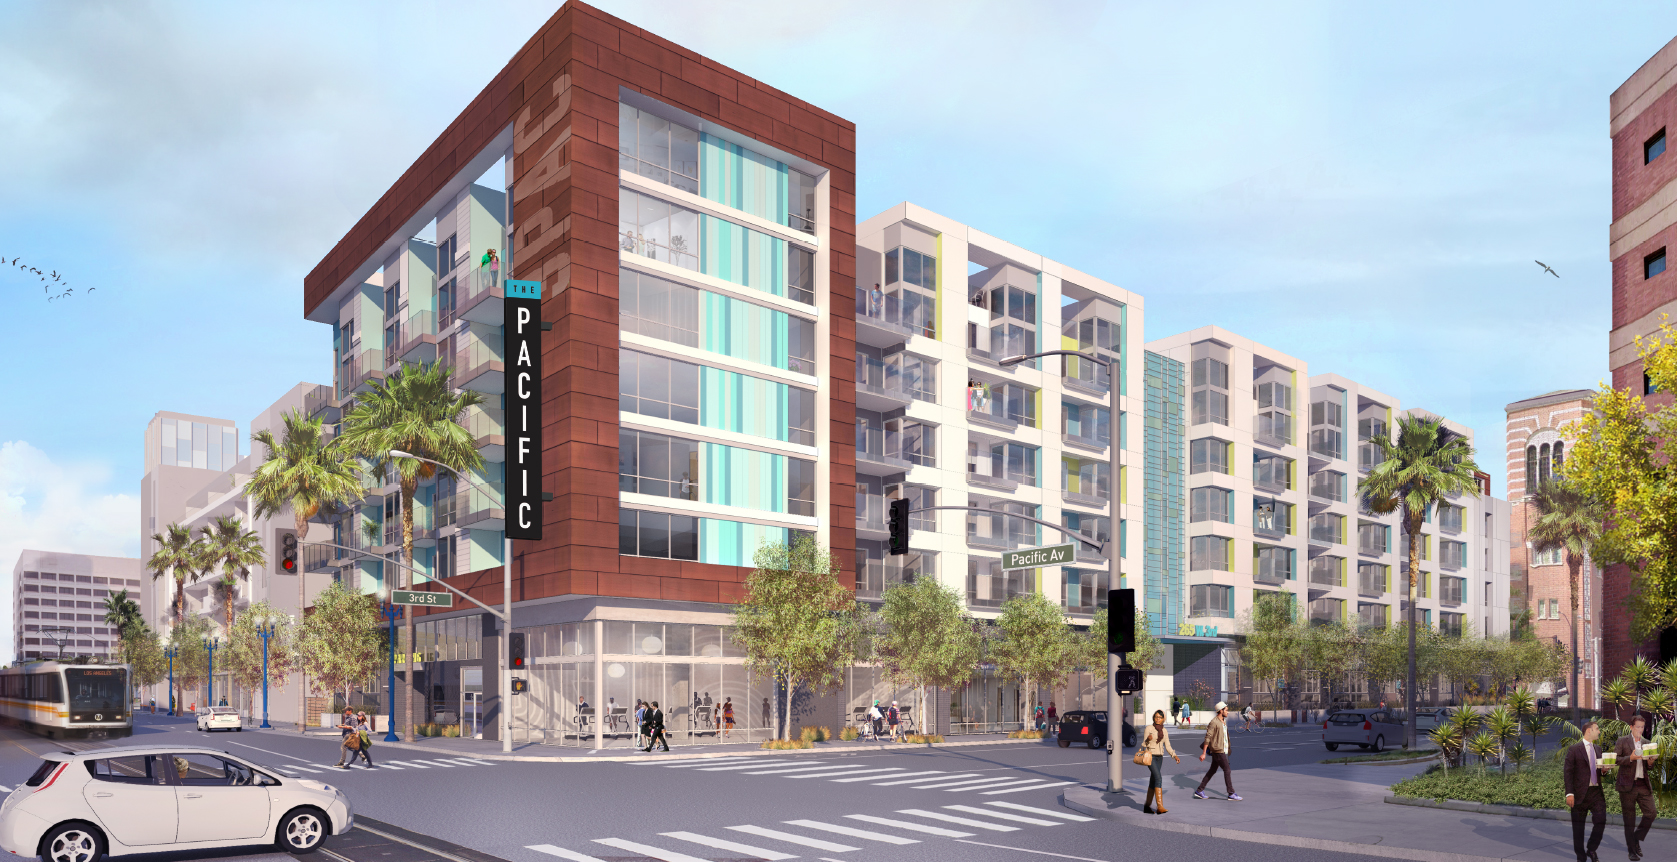 The Pacific Apartments Opening Soon in Long Beach's West Gateway Neighborhood